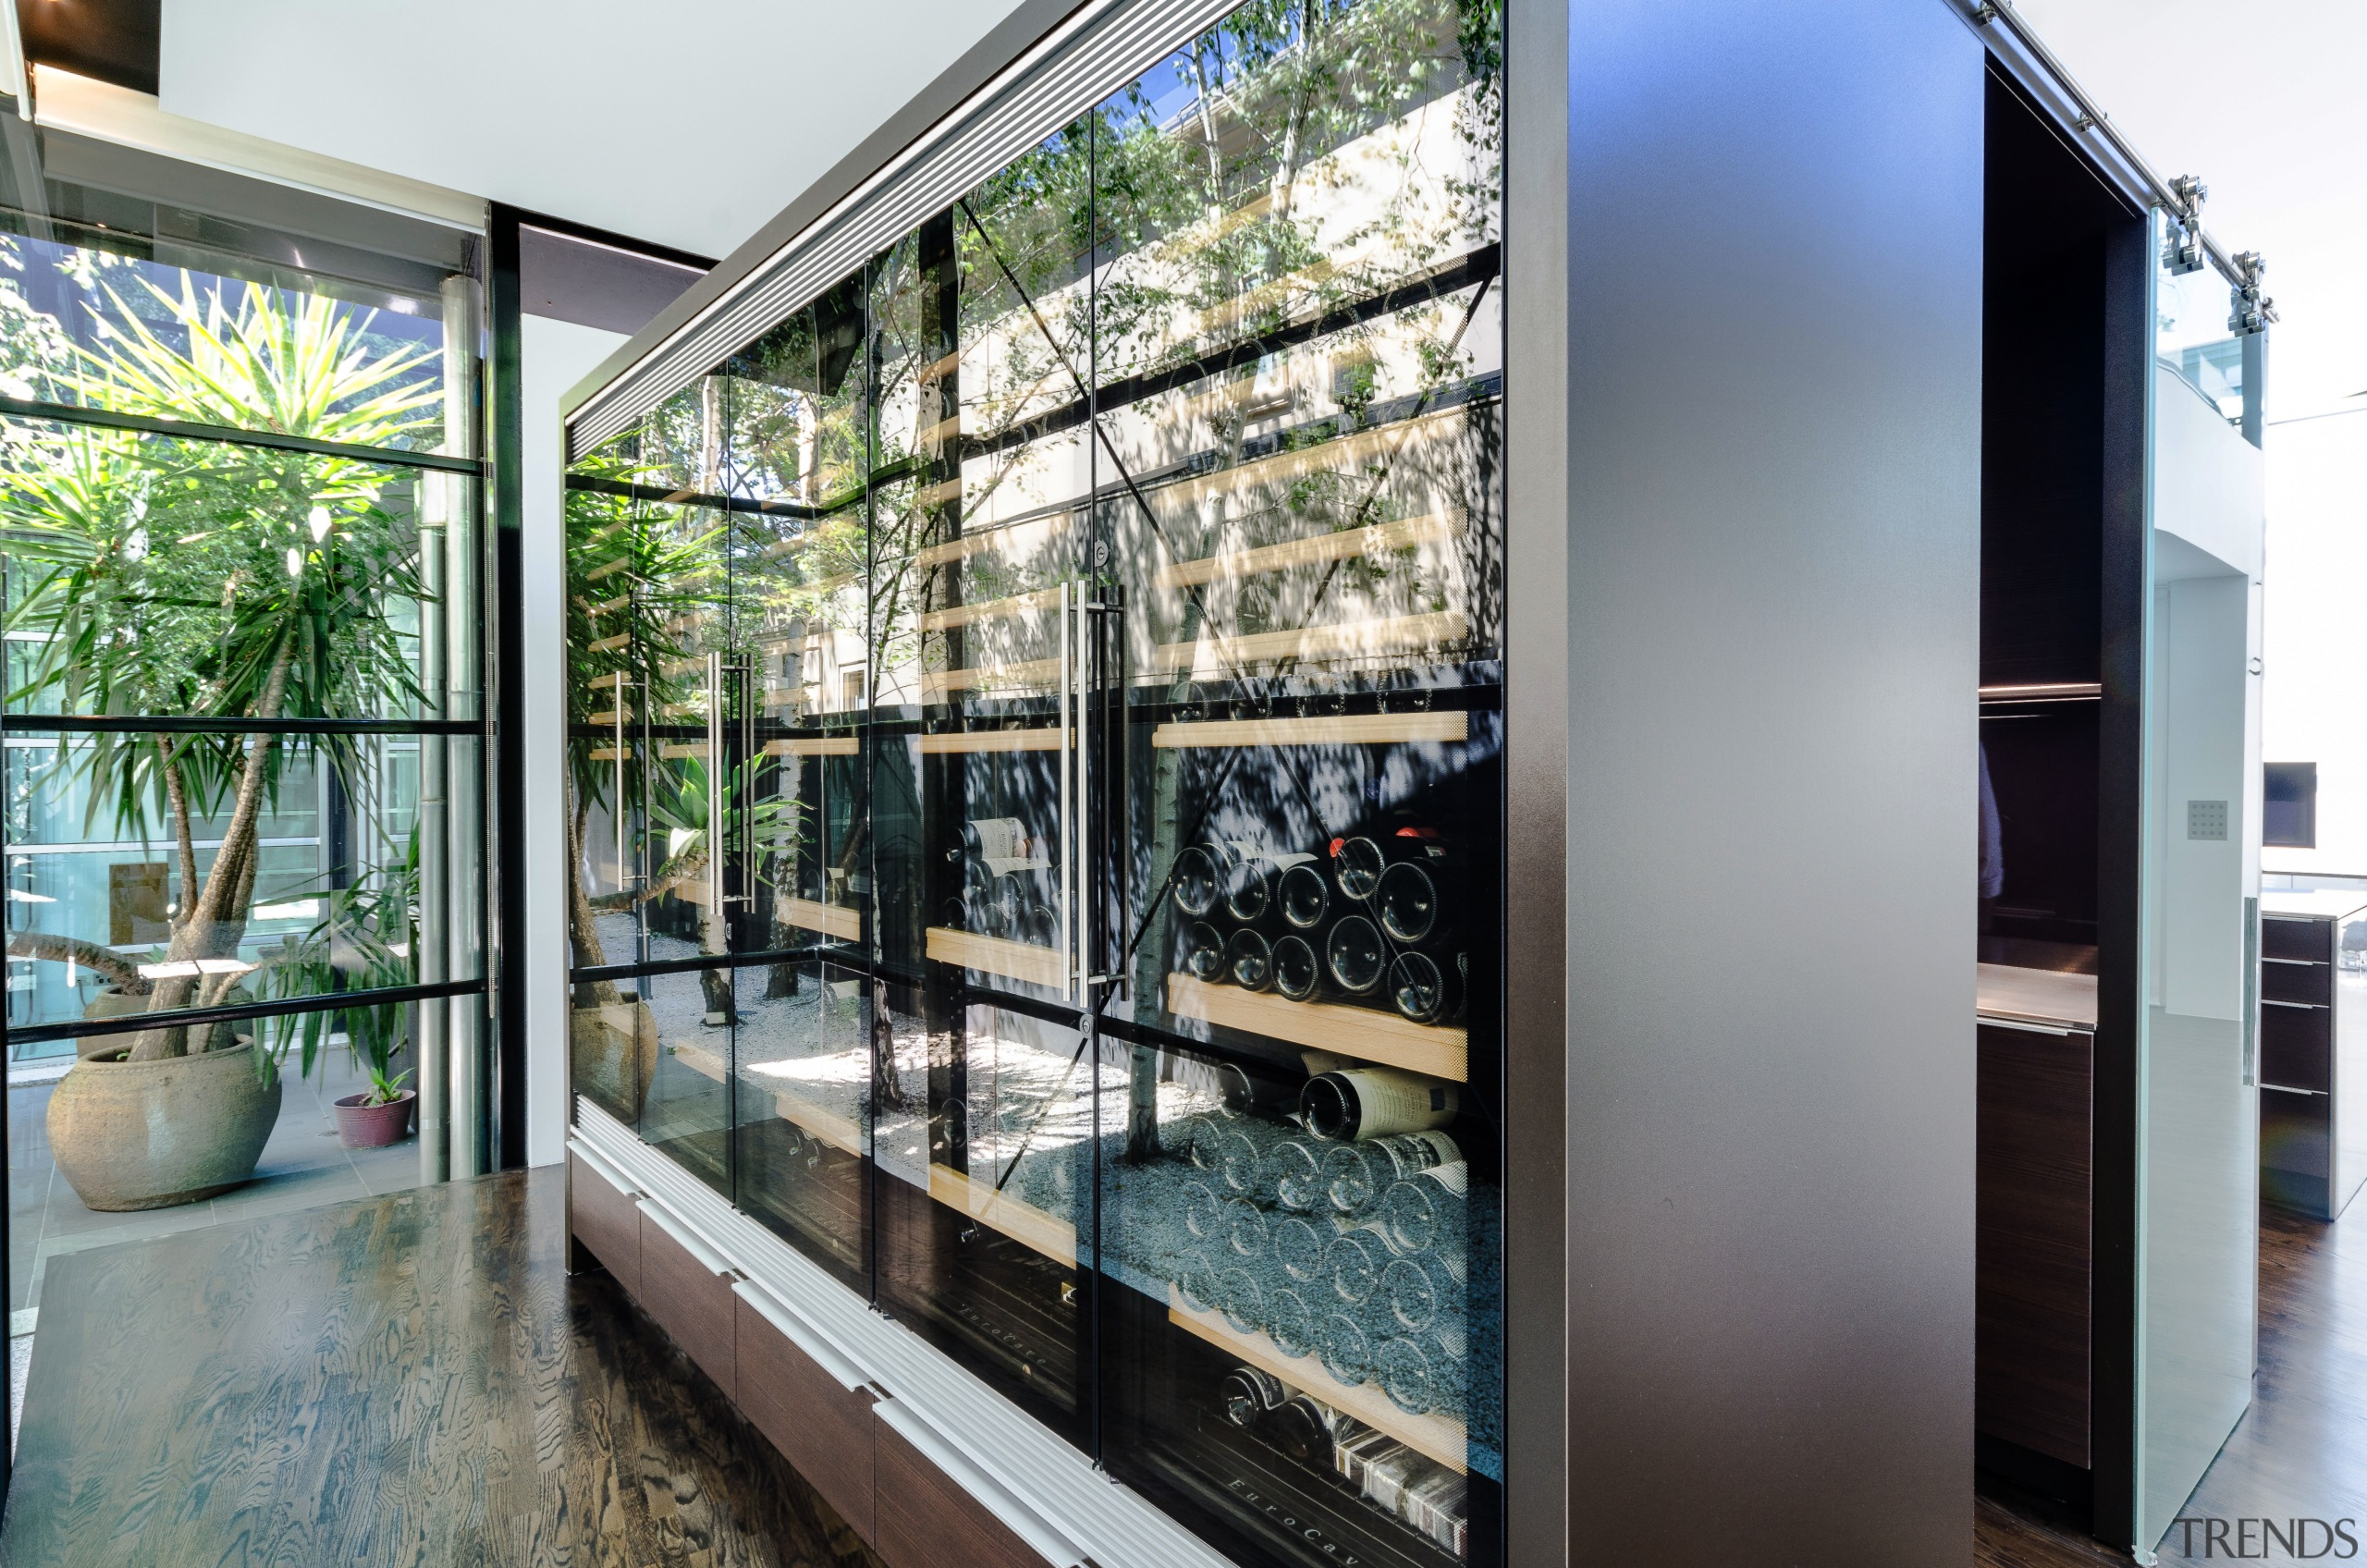 Not one, not two, but rather five high-tech architecture, glass, house, real estate, window, gray